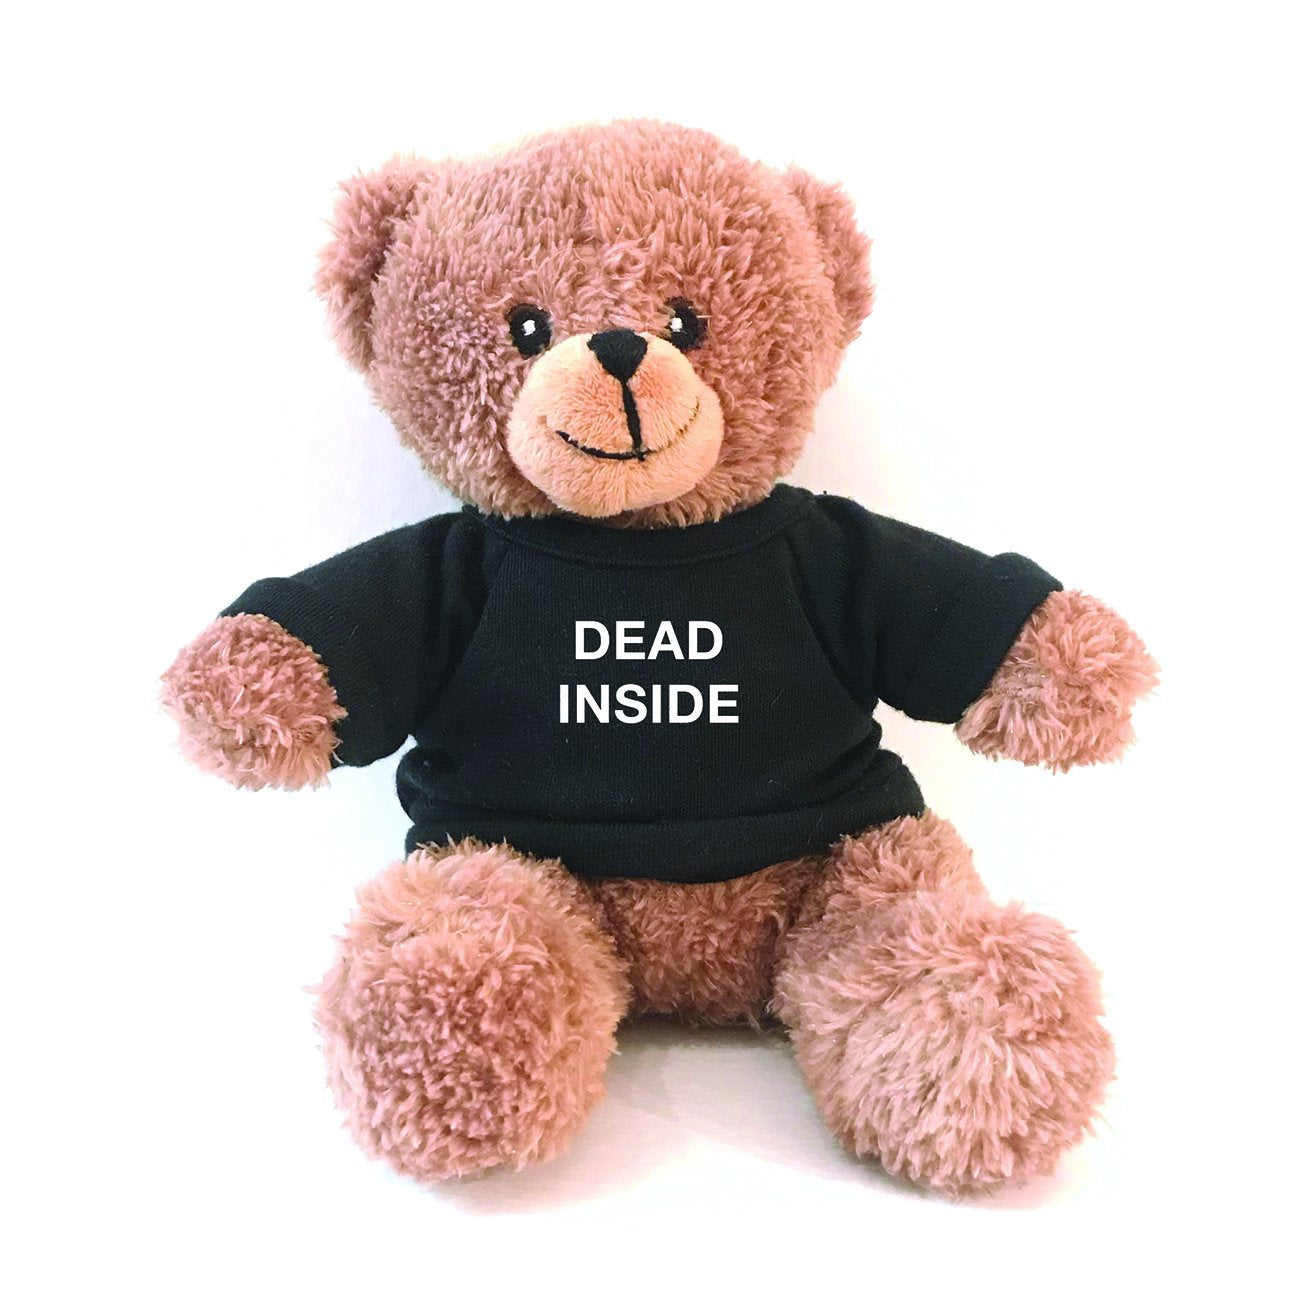 Teddy - Dead Inside